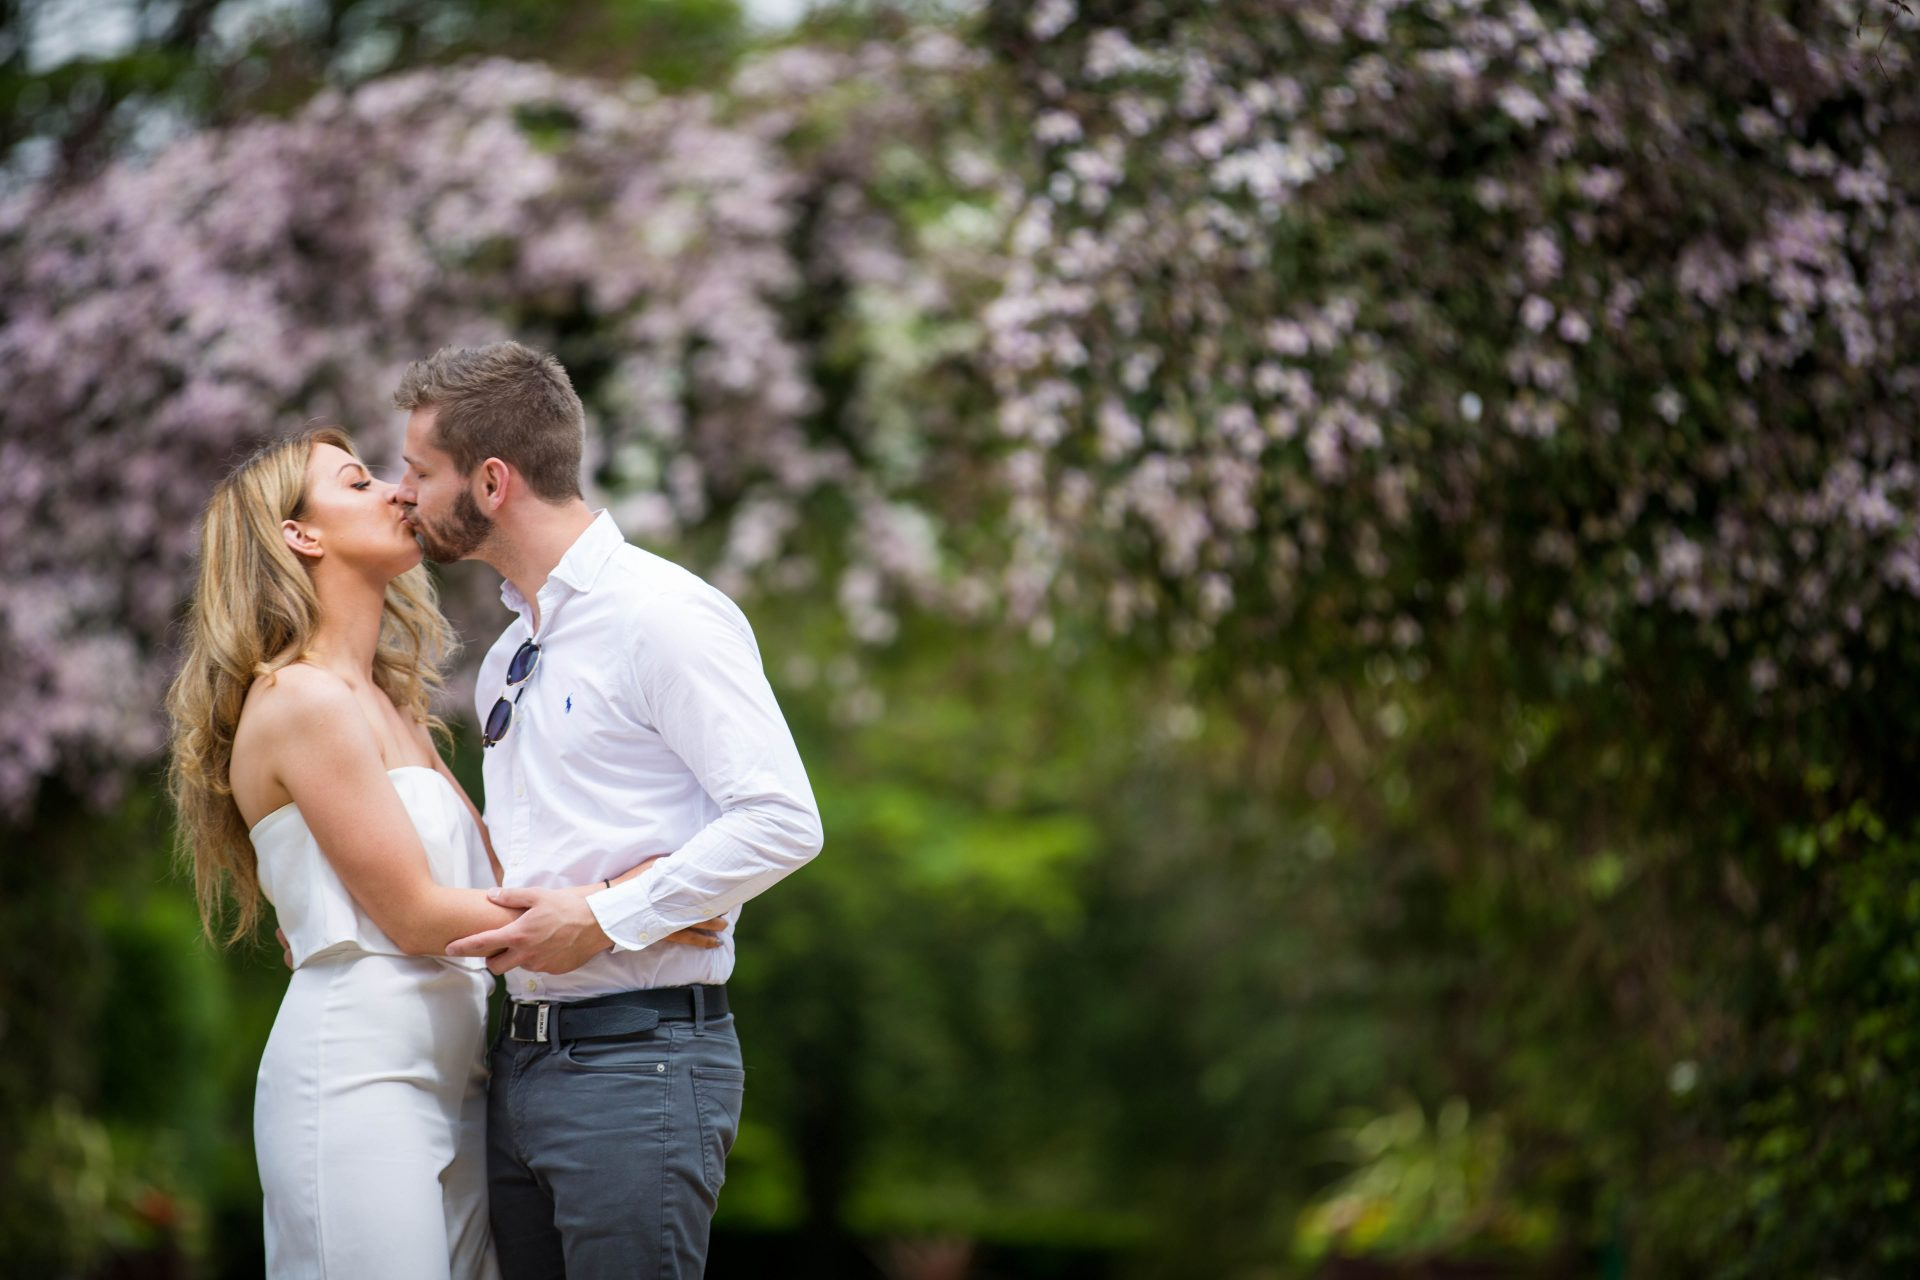 Beautriful Candis Wedding Photographer in Yorkshire.